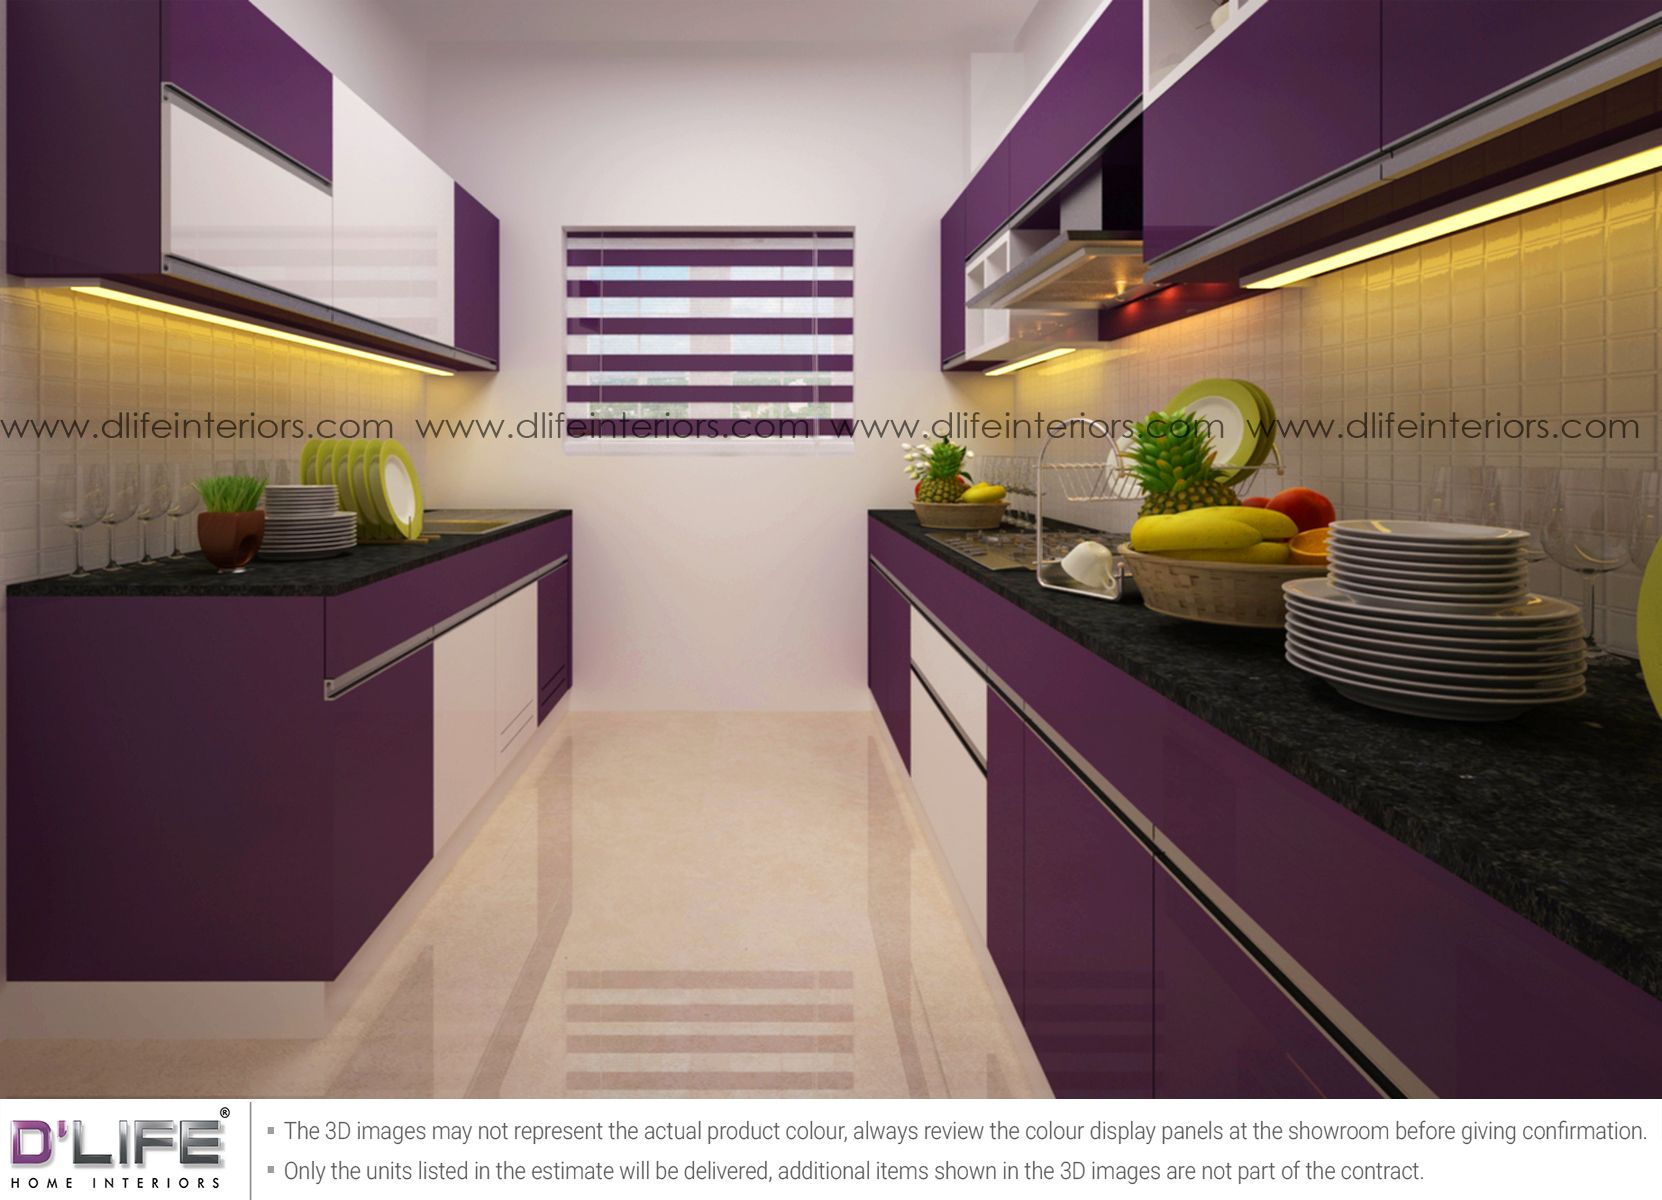 Parallel Kitchen Interiors In Purple Frosty White Kitchen Design Open Parallel Kitchen Design Kitchen Design Color